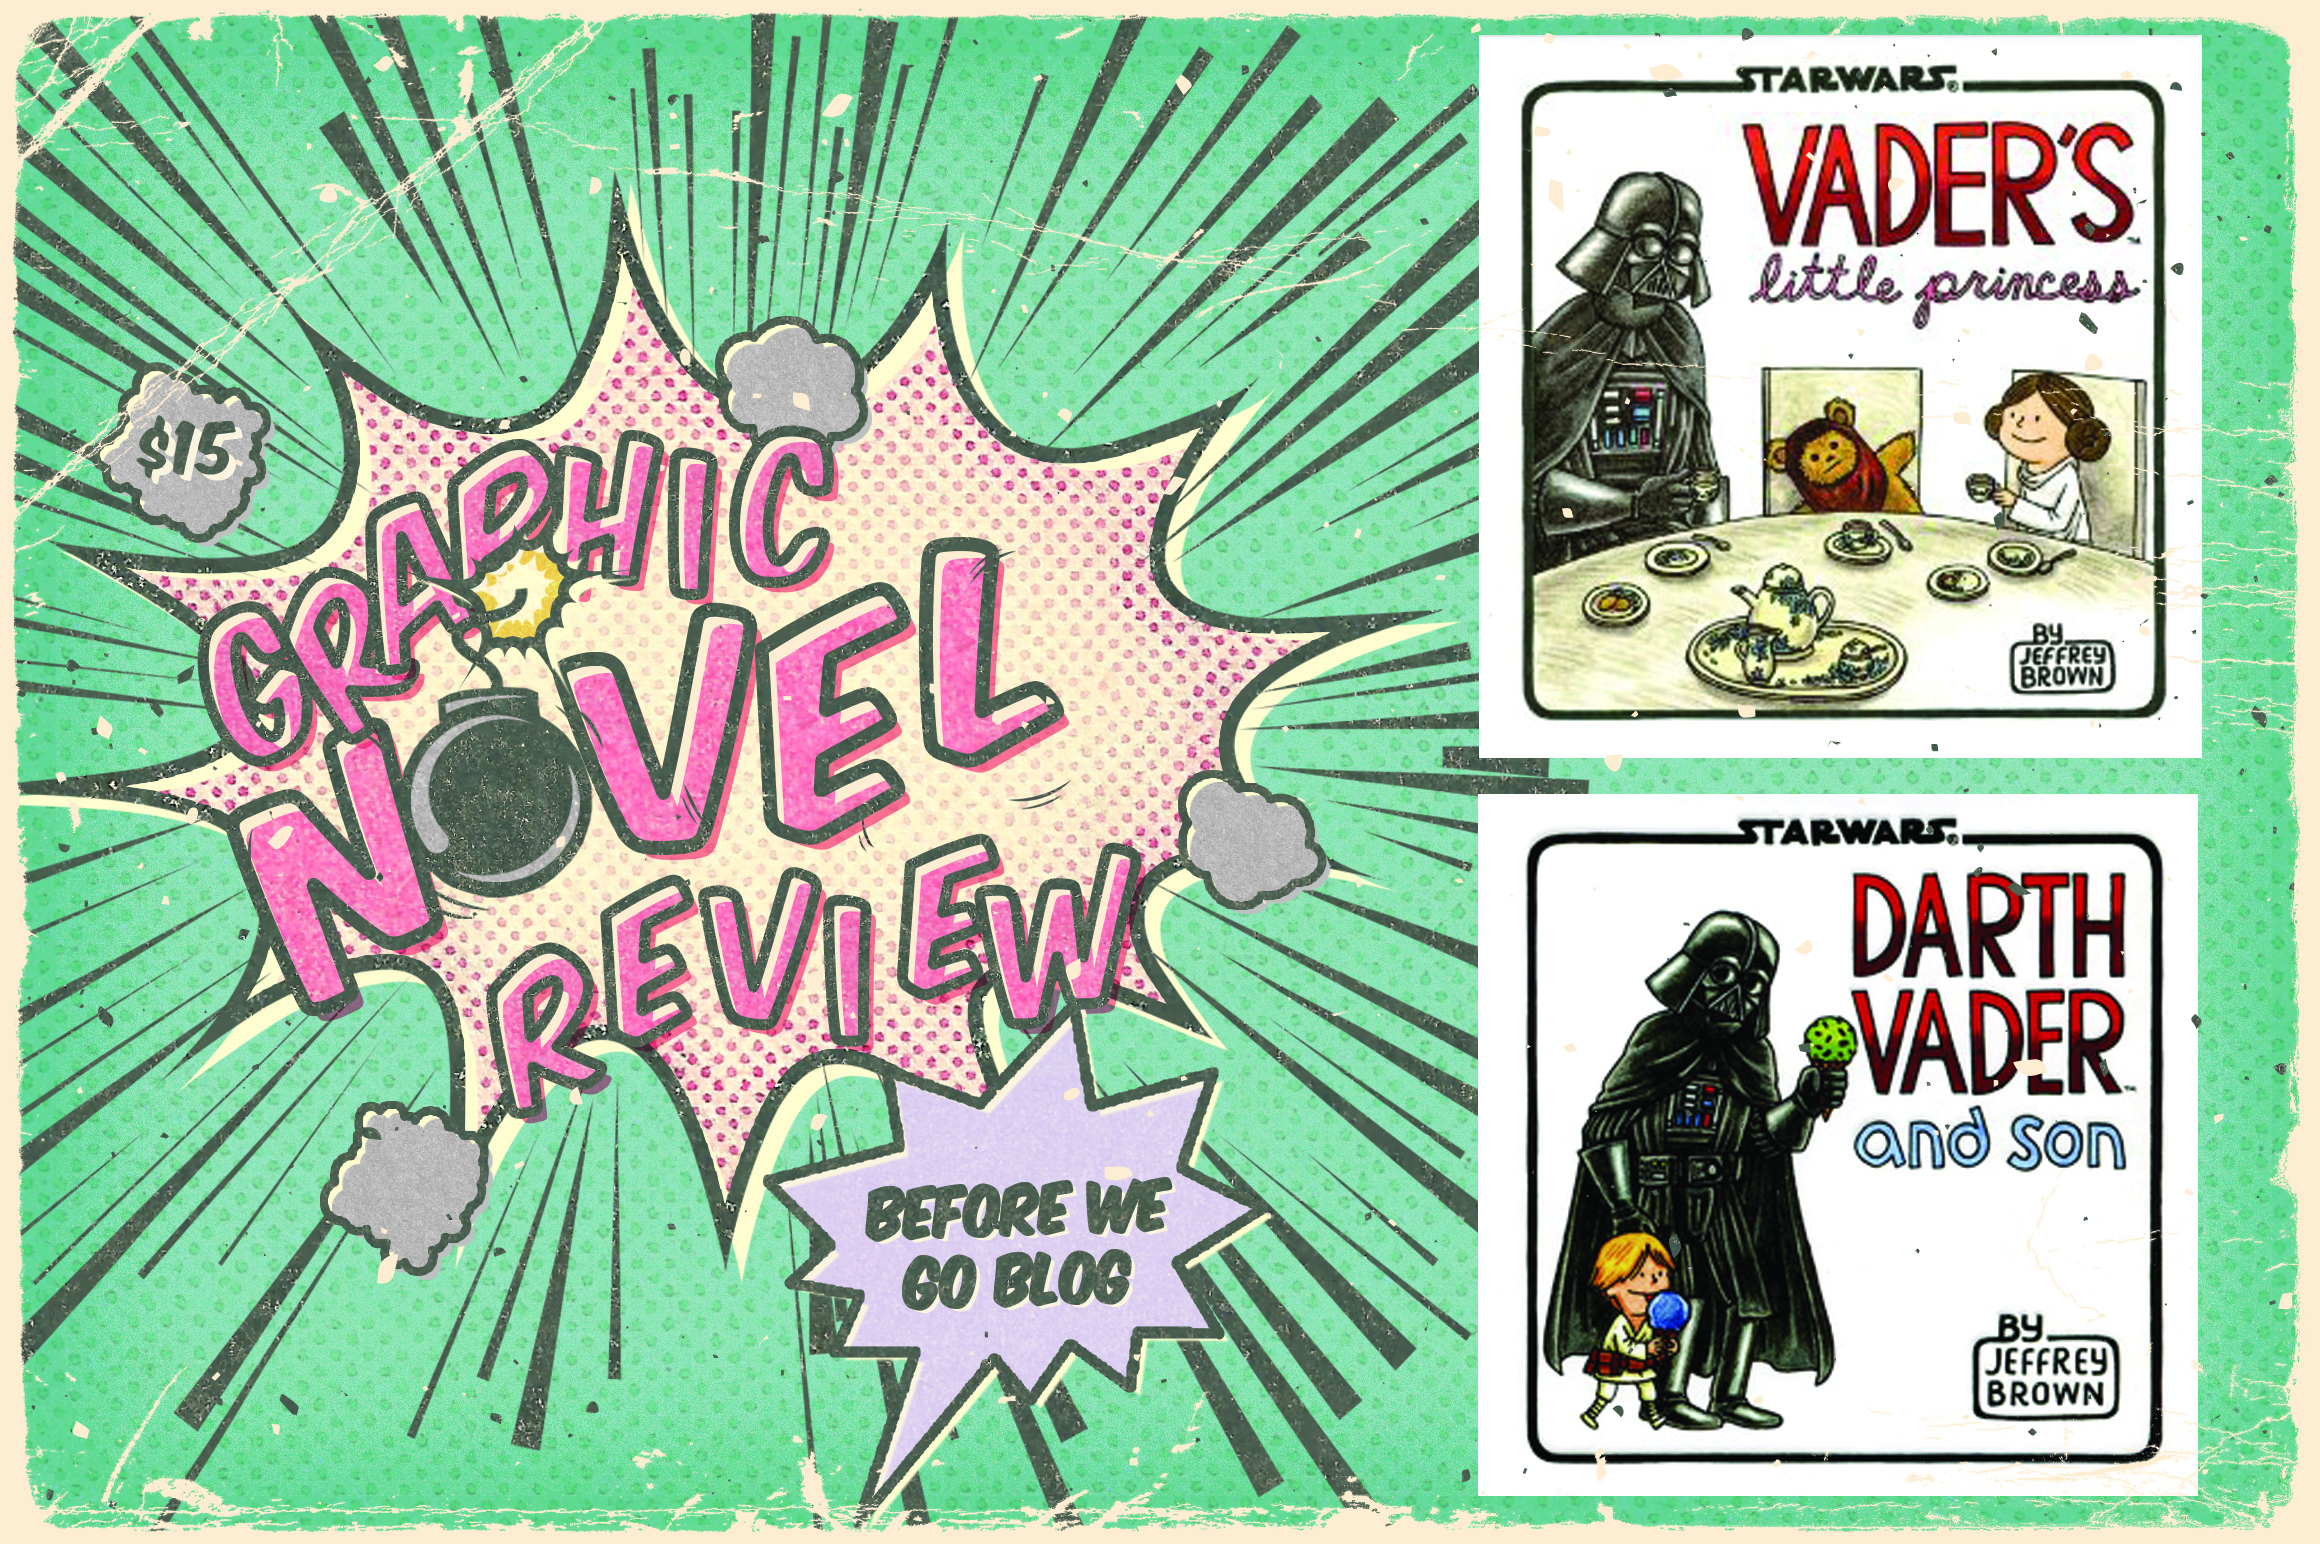 Review of Vader's Little Princess and Darth Vader and Son by Jeffrey Brown